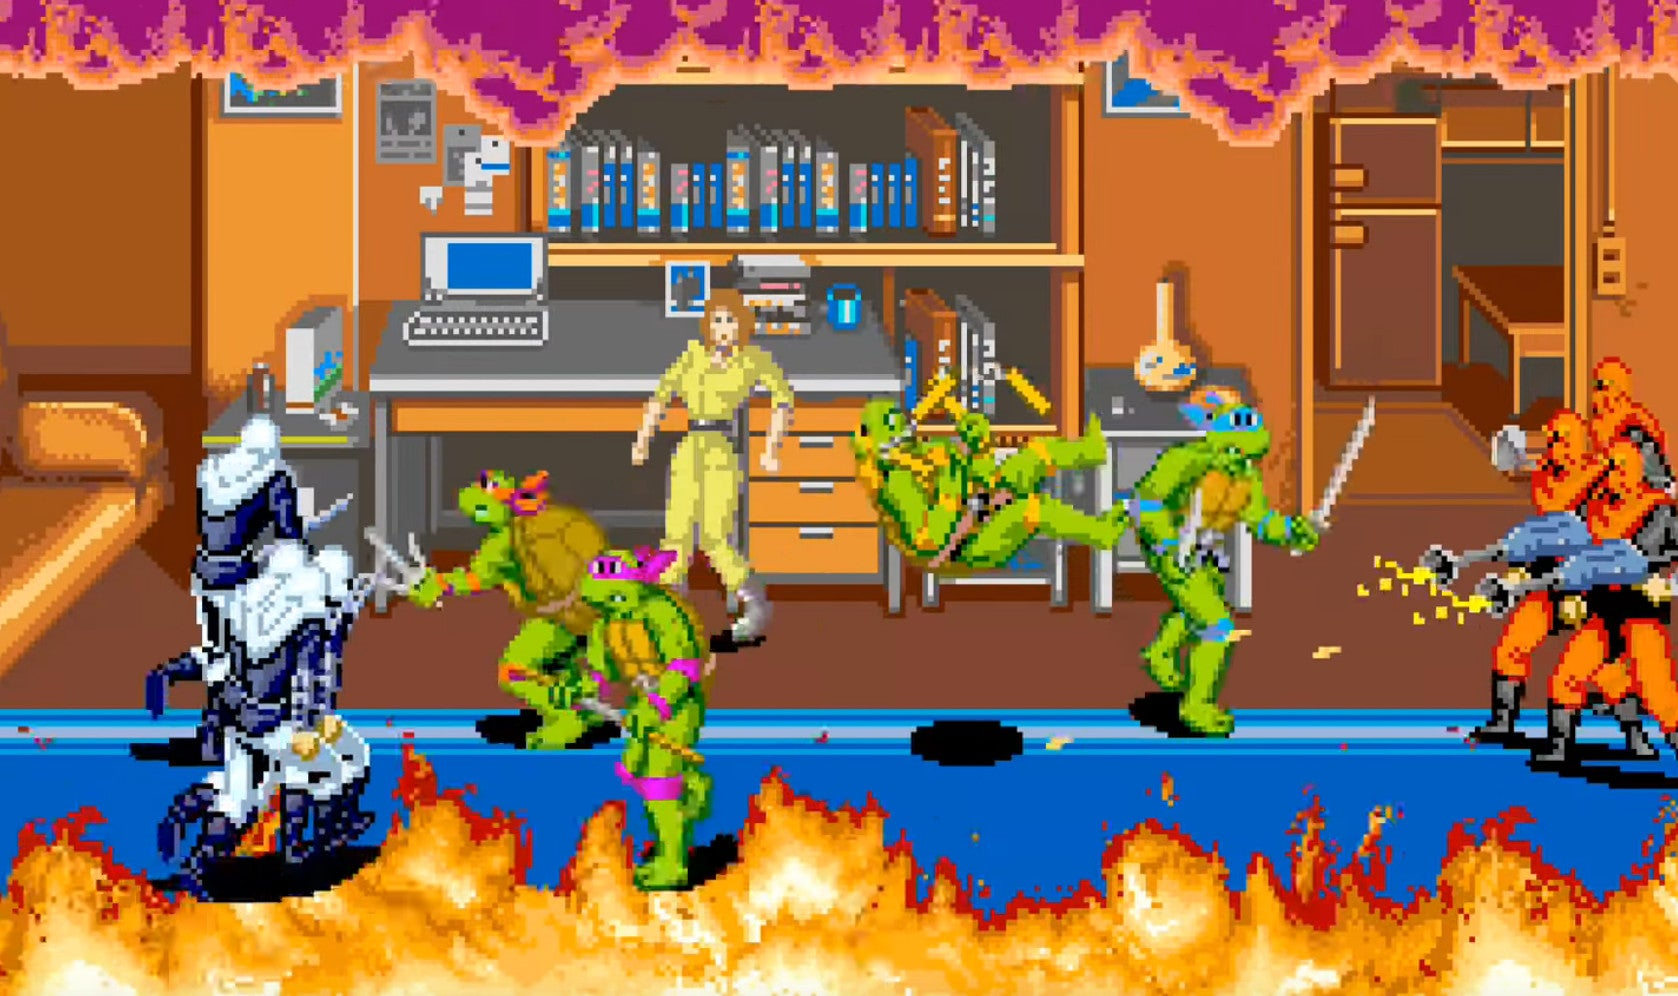 Teenage Mutant Ninja Turtles Was Arcade Co-Op Action At Its Finest